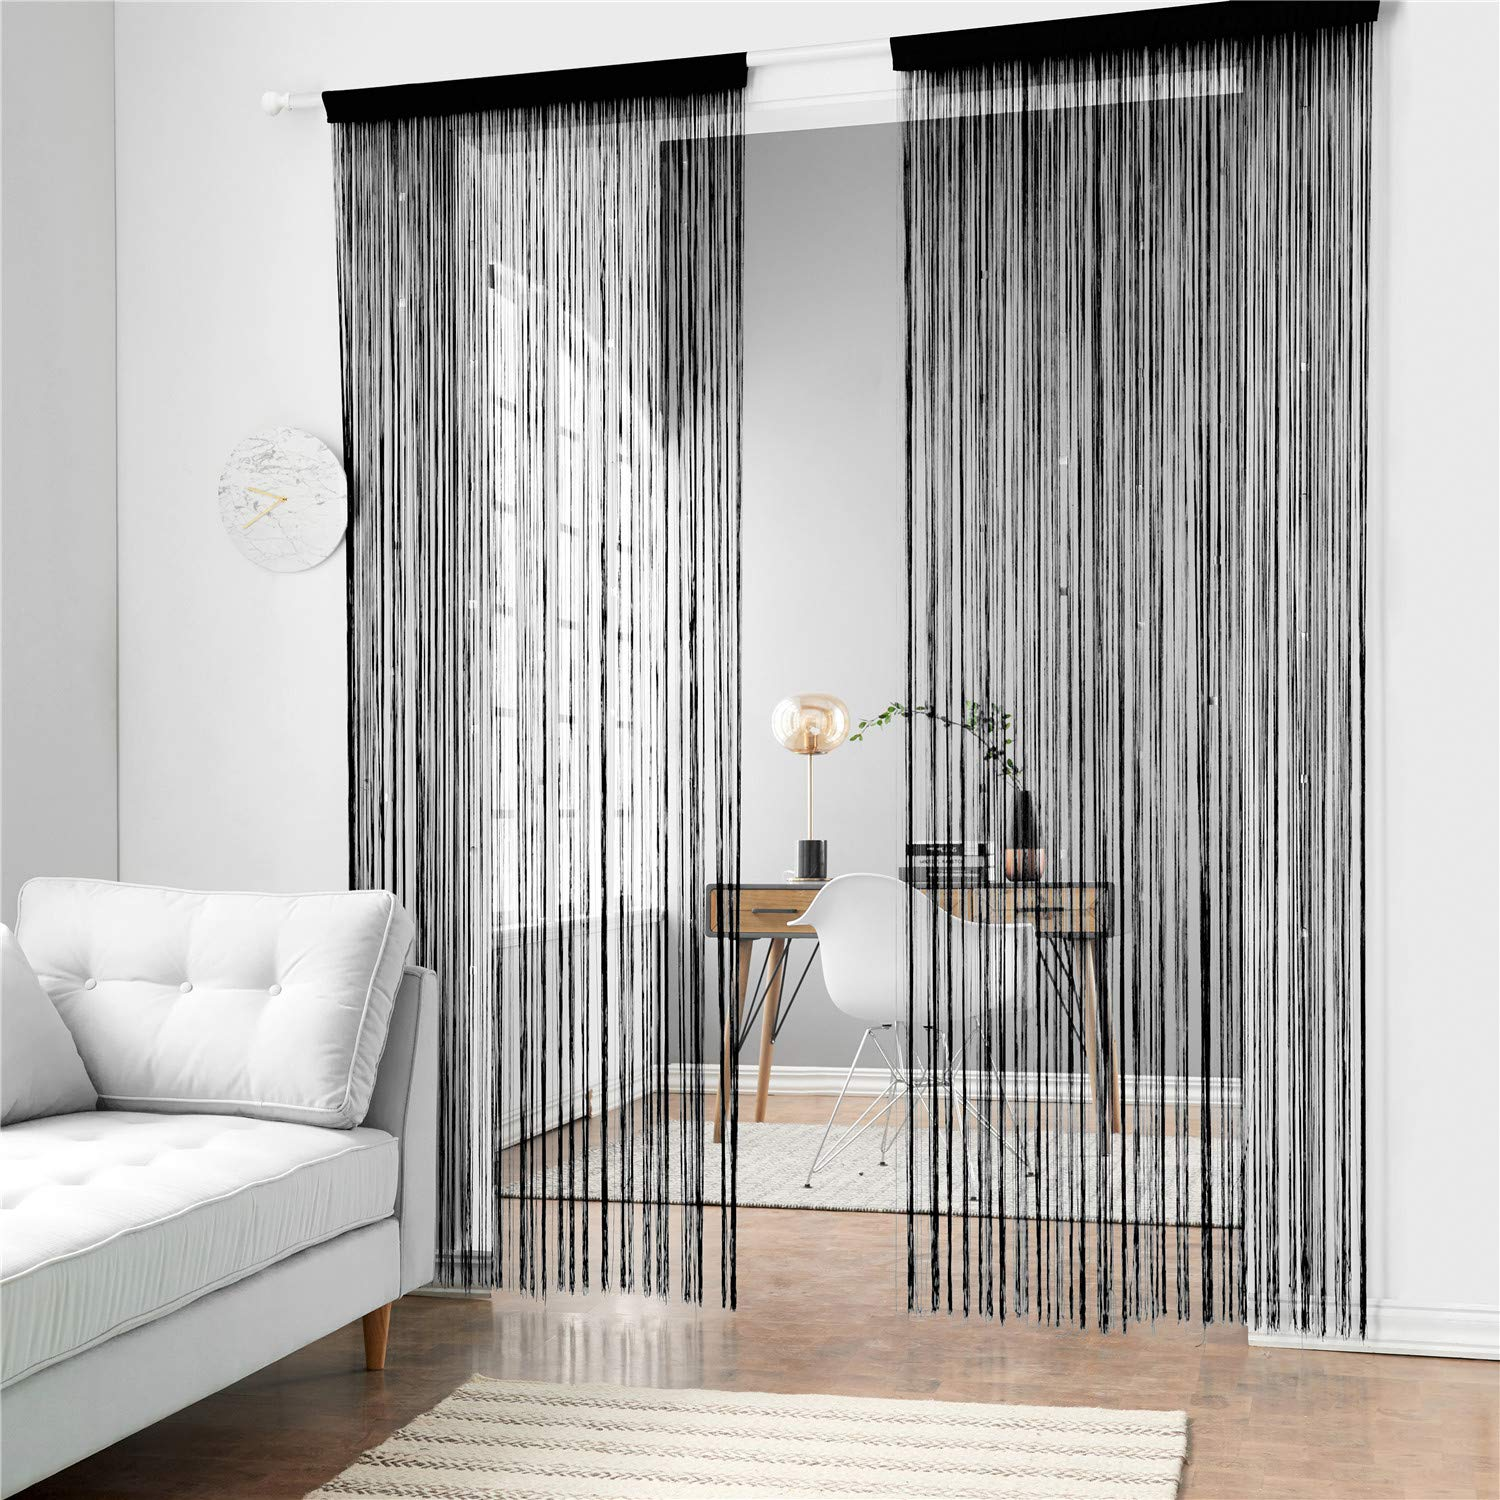 Taiyuhomes Dense String Curtain Fringe String Door Curtain Panels Room Divider Fly Screen for Living Room (39x110,Grey